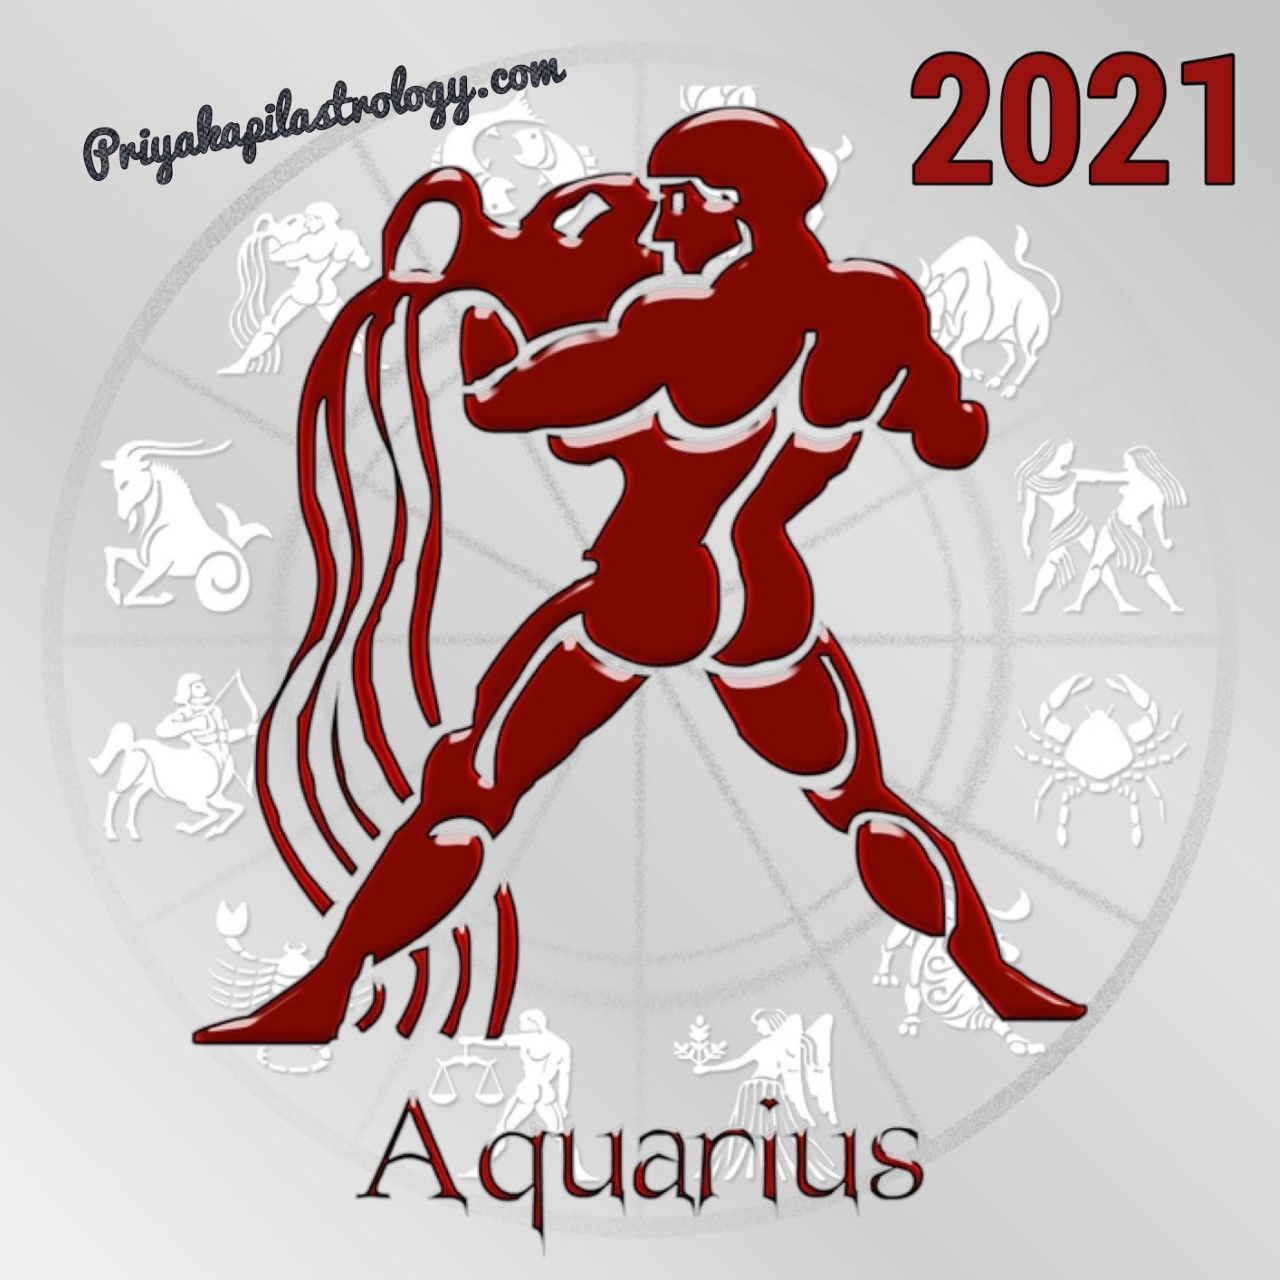 Aquarius 2021 Priya Kapil Astrology